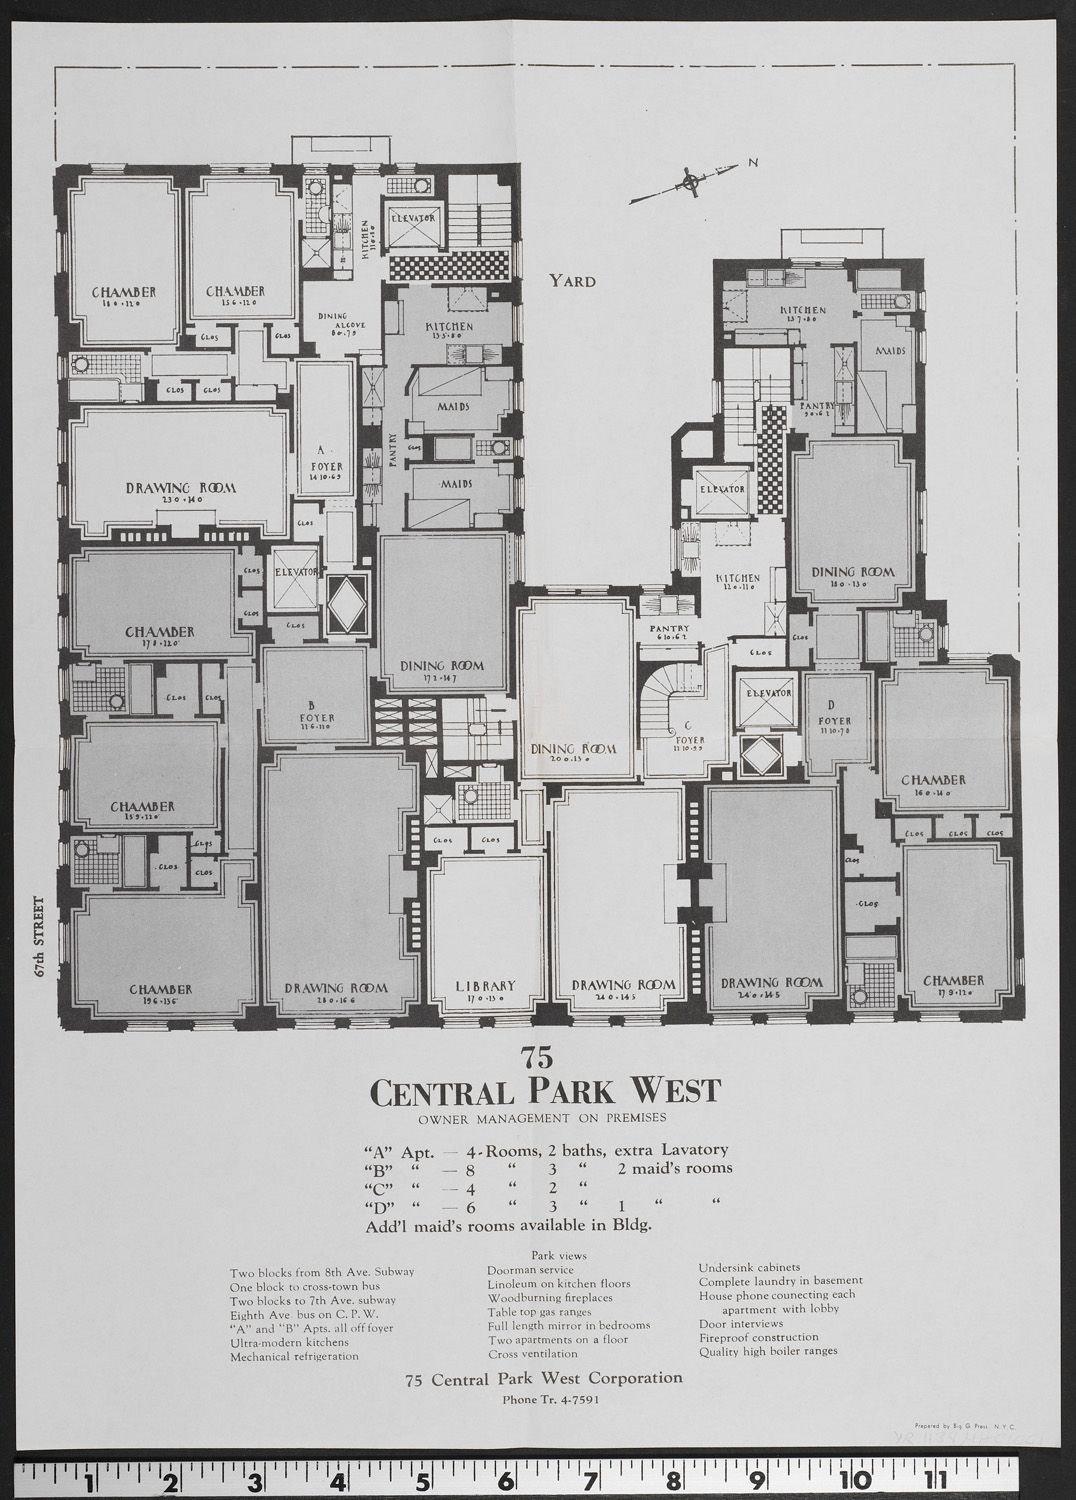 Floor Plan Of 75 Central Park West Constructed In 1928 By Flatiron Building Architect Rosario